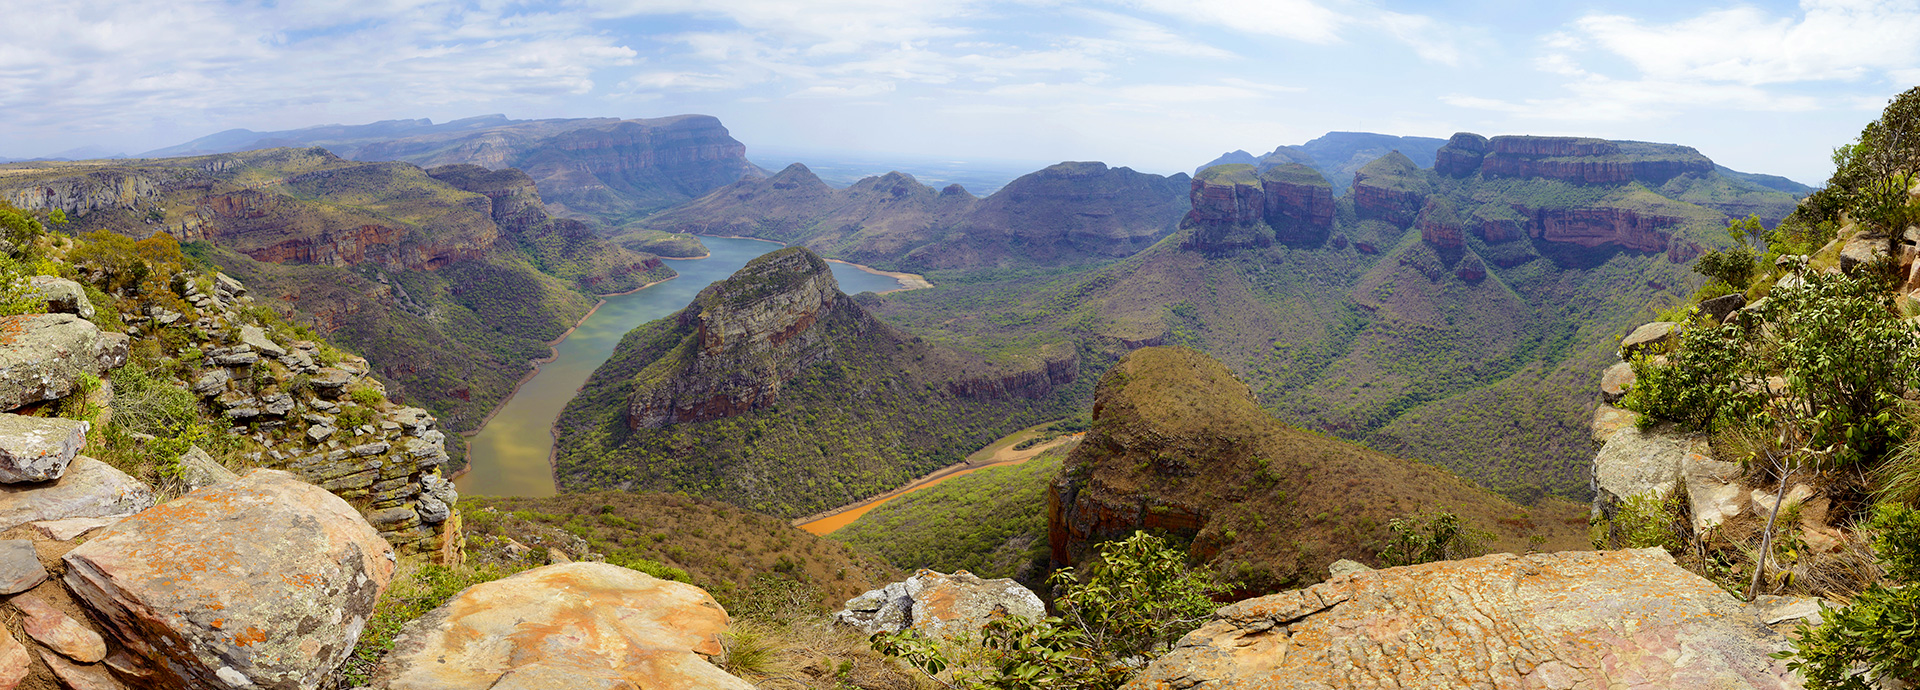 south-africa-blyde-river-canyon-slide05